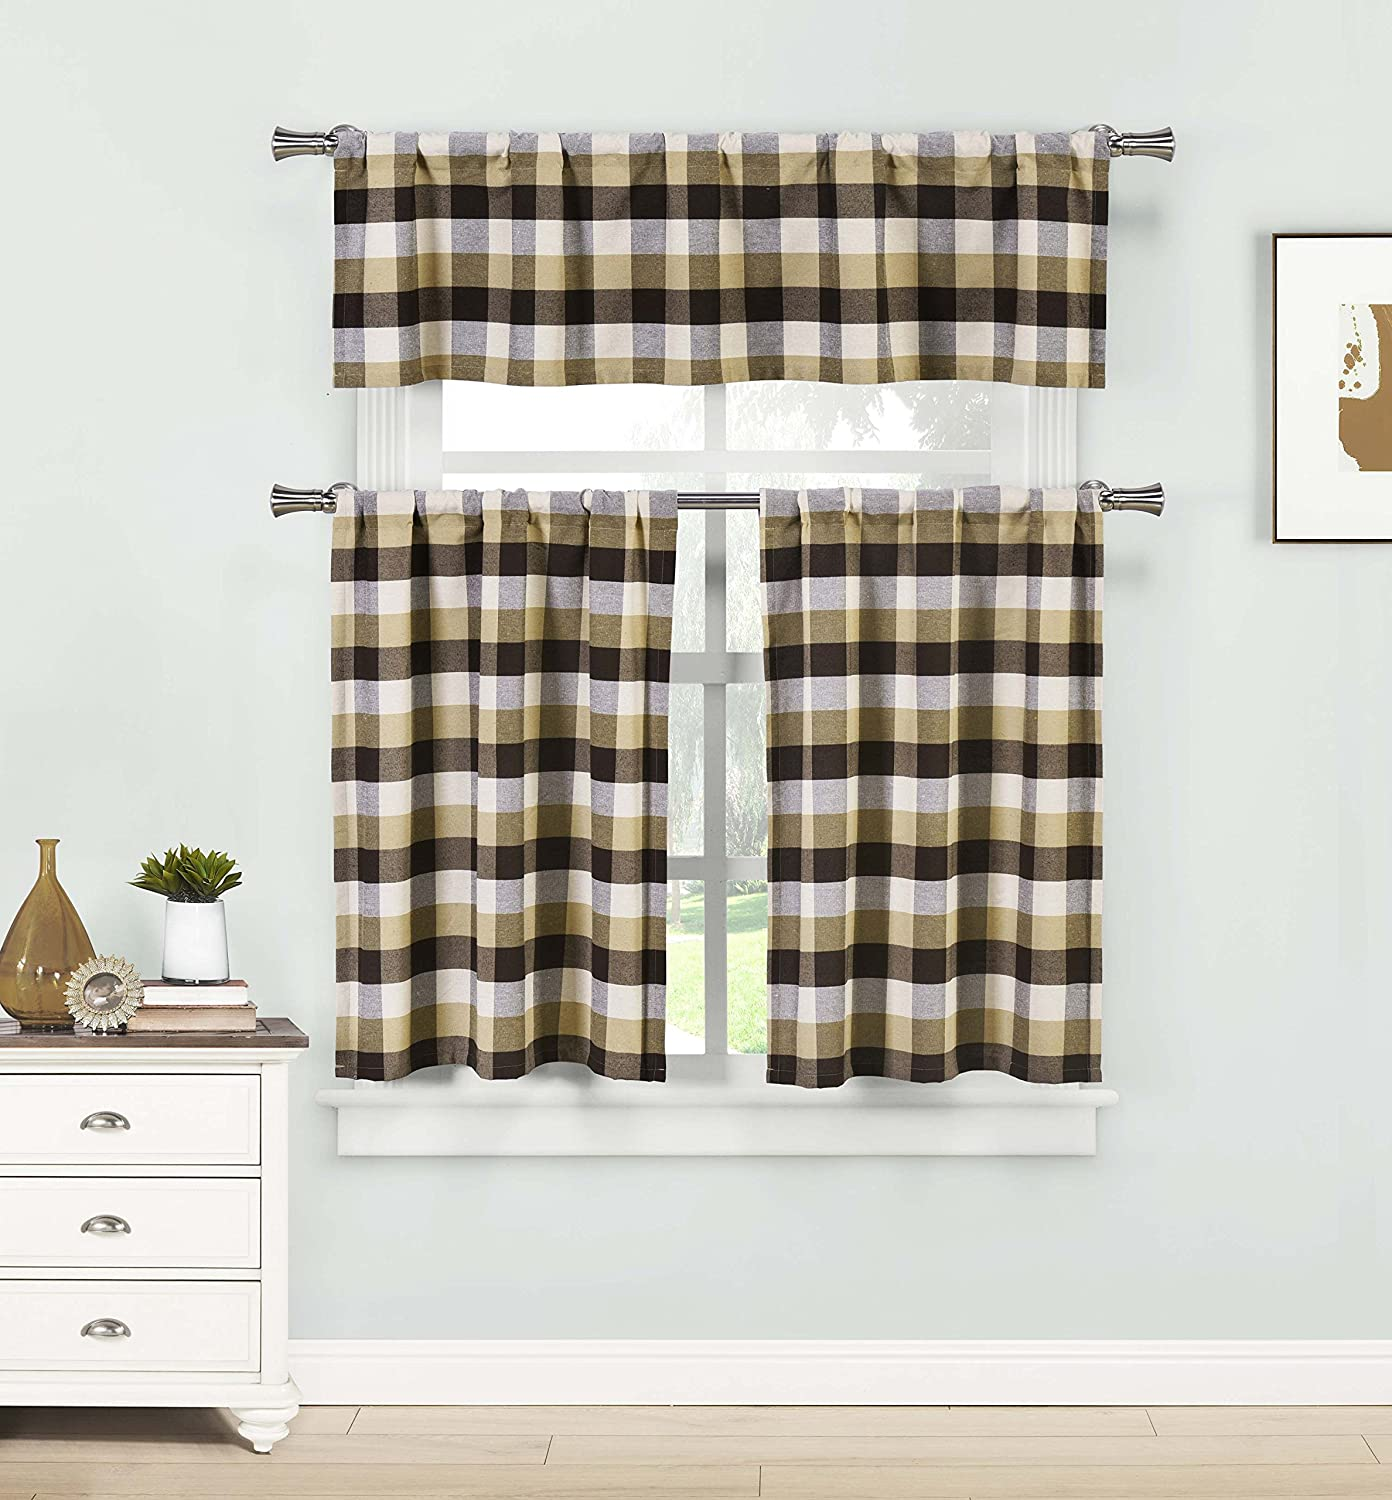 Home Maison- Kingsville Country Plaid Gingham Checkered Kitchen Tier & Valance Set | Small Window Curtain for Cafe, Bath, Laundry, Bedroom - (Brown)